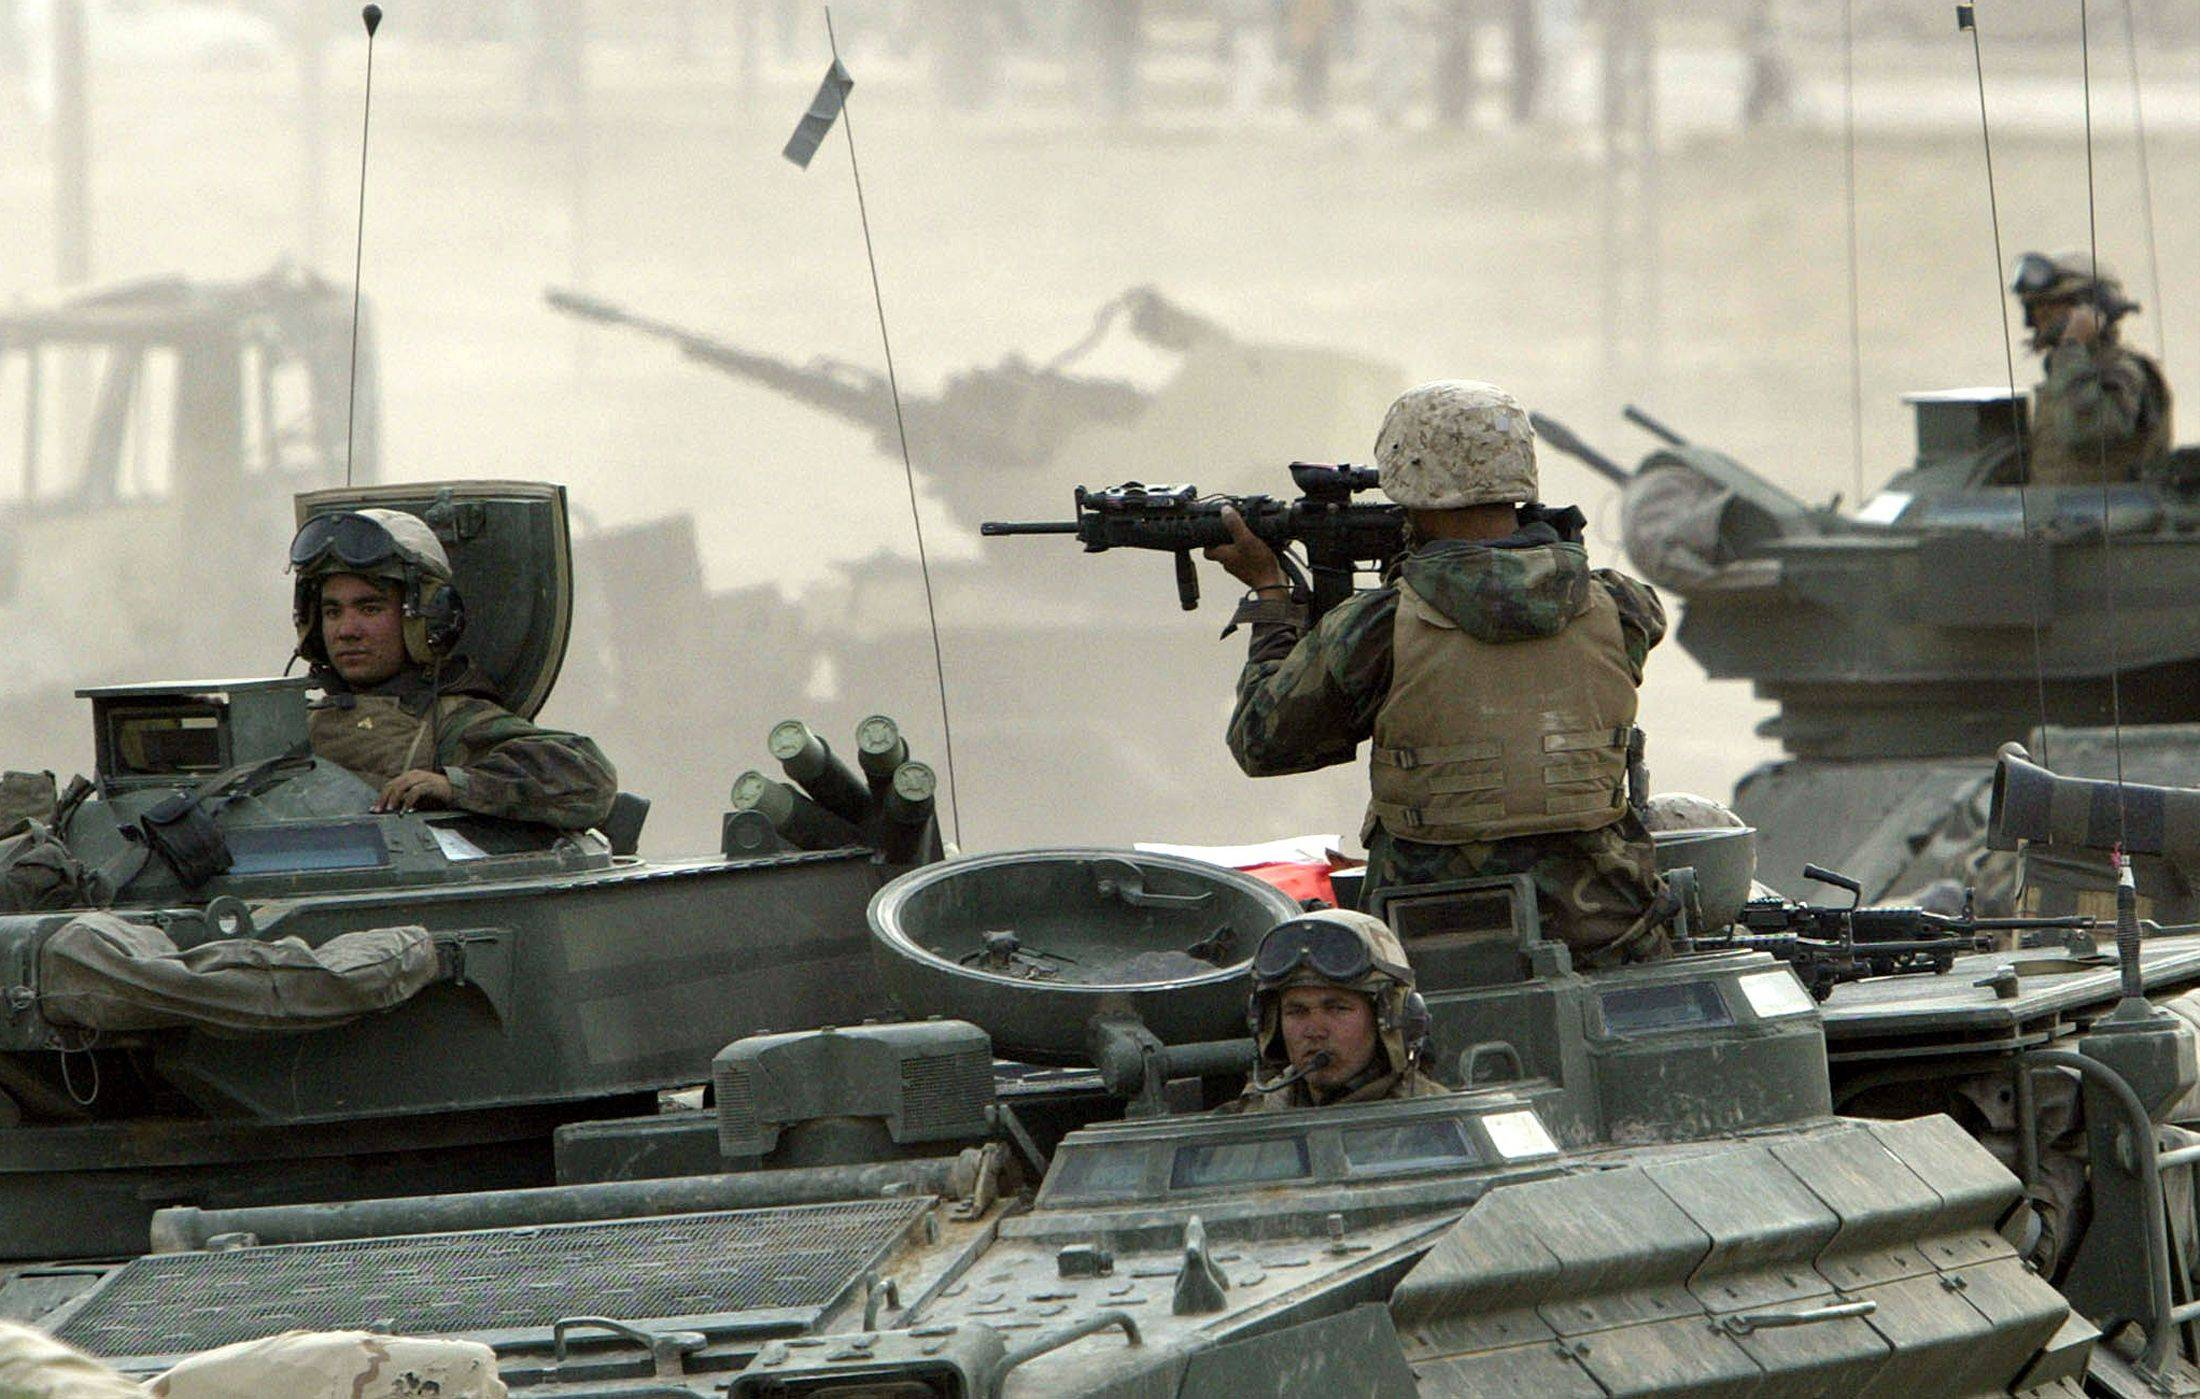 U.S. Marines in Iraq capture a bridge on the Tigris River, securing a key crossing point for their advance on Baghdad in 2003.